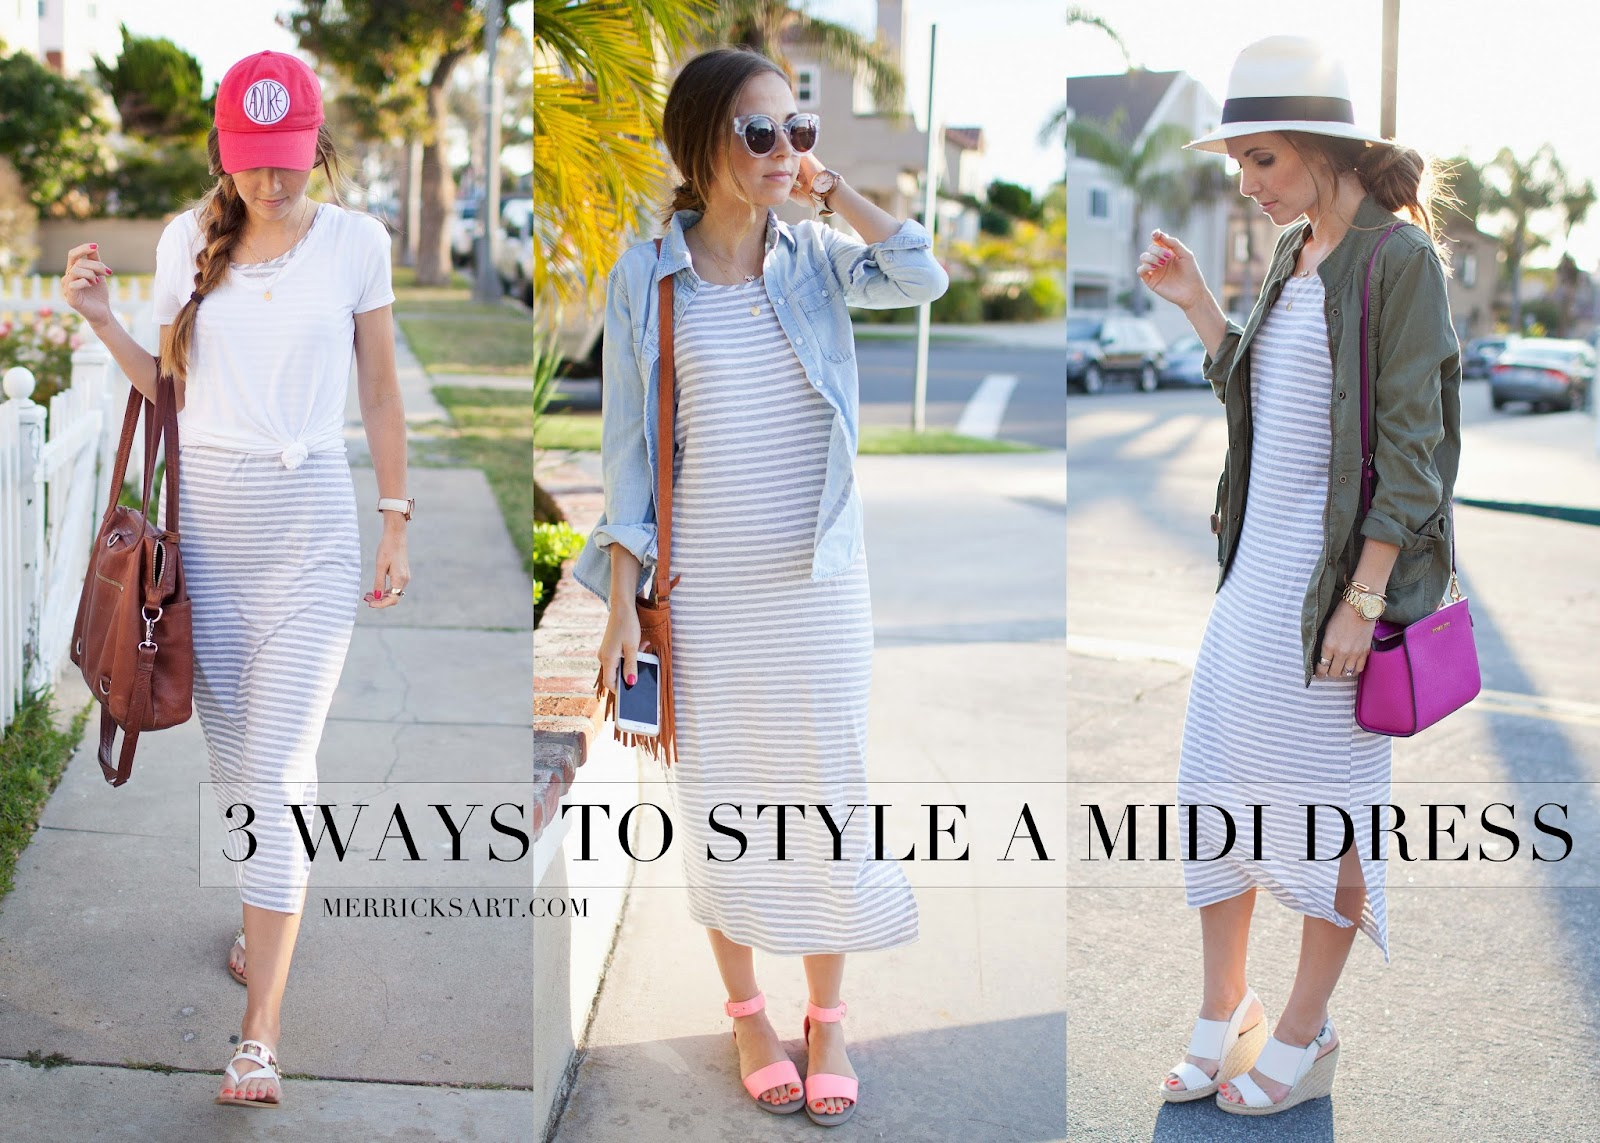 Merrick's Art | Three Ways to Wear a Midi Dress